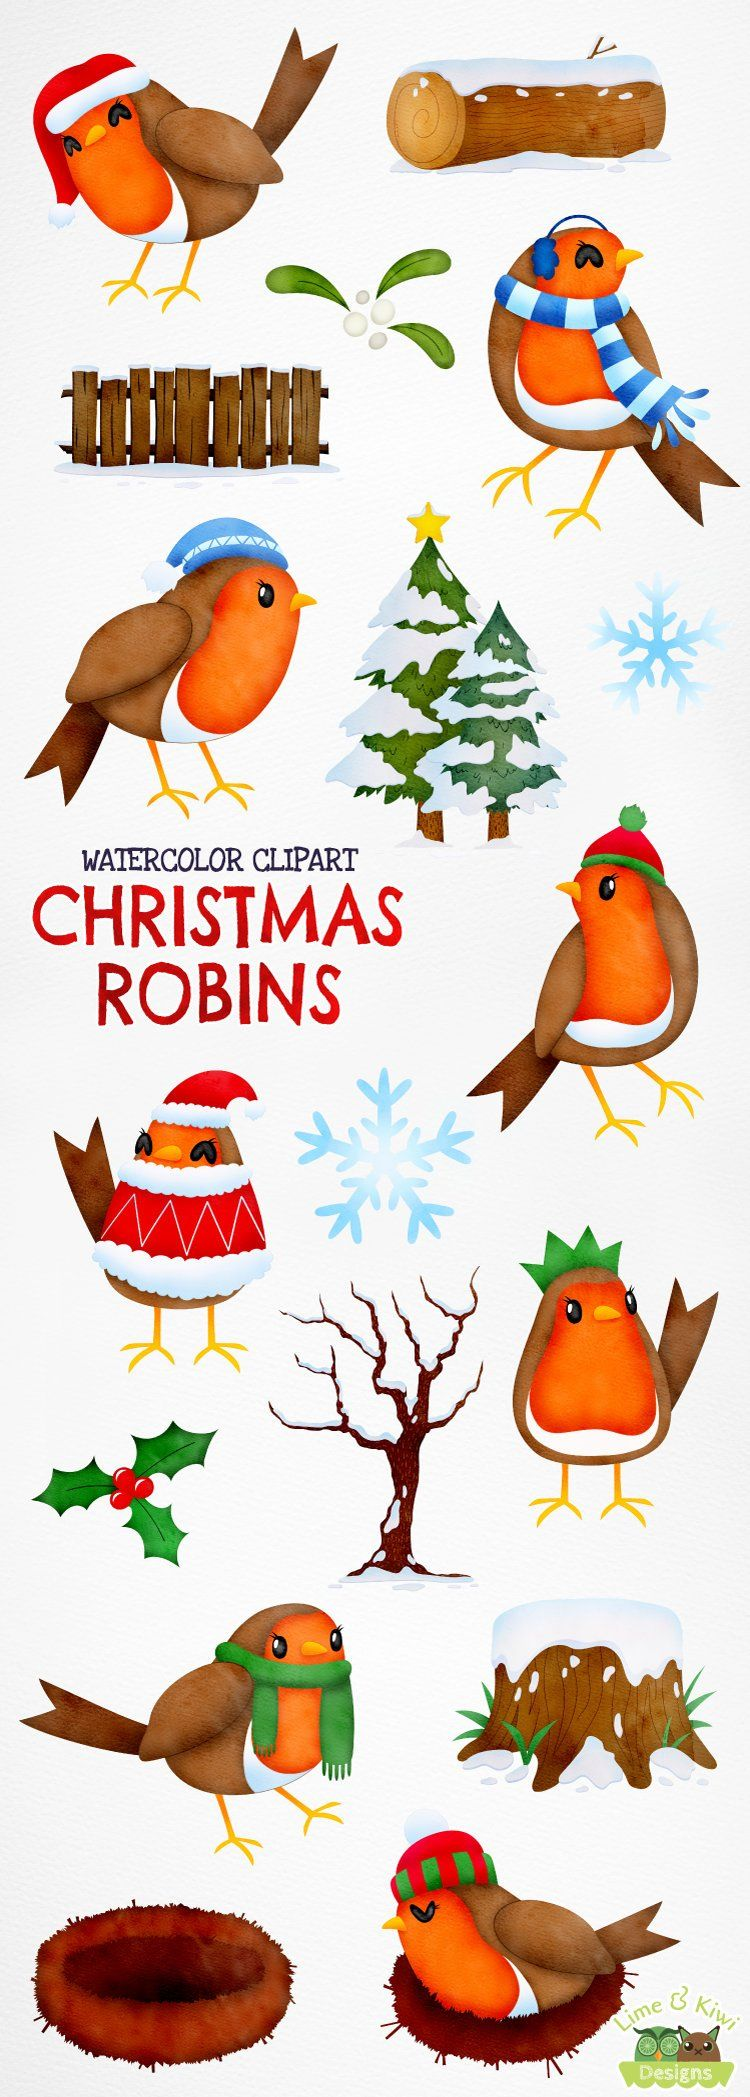 small resolution of christmas robins watercolor clipart instant download vector etsy